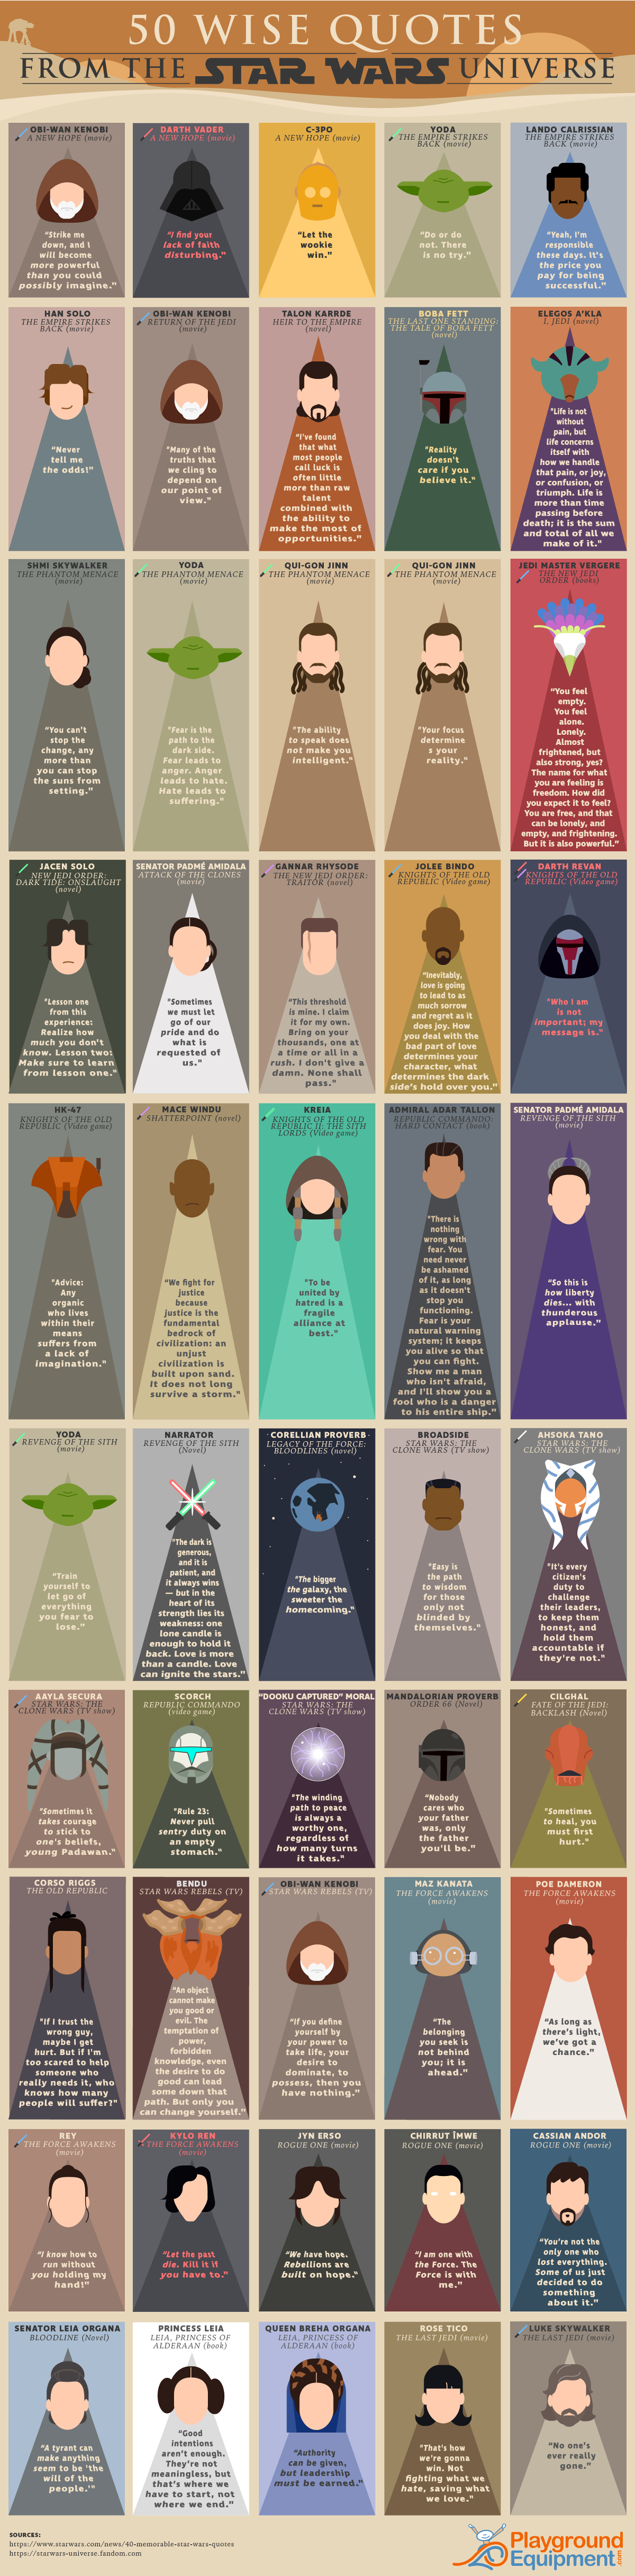 50 Wise Quotes from the Star Wars Universe #infographic